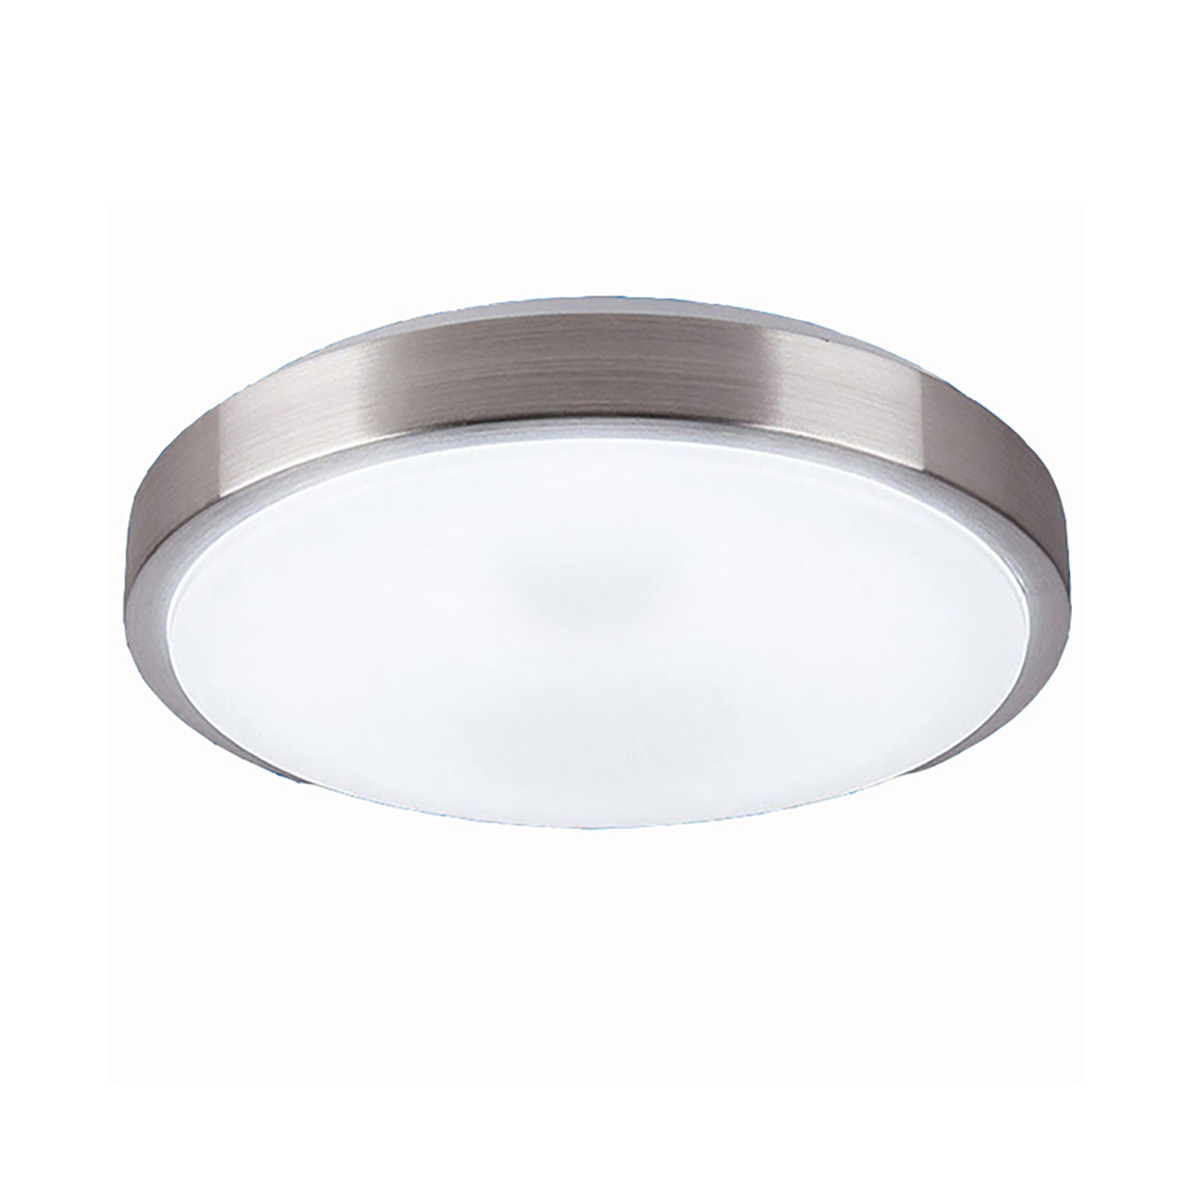 18W 13 inch Isolated Power Flush Mount Antique with Brushed Nickel edgeTri-ple white Options LED Ceiling Light for Home Lighting